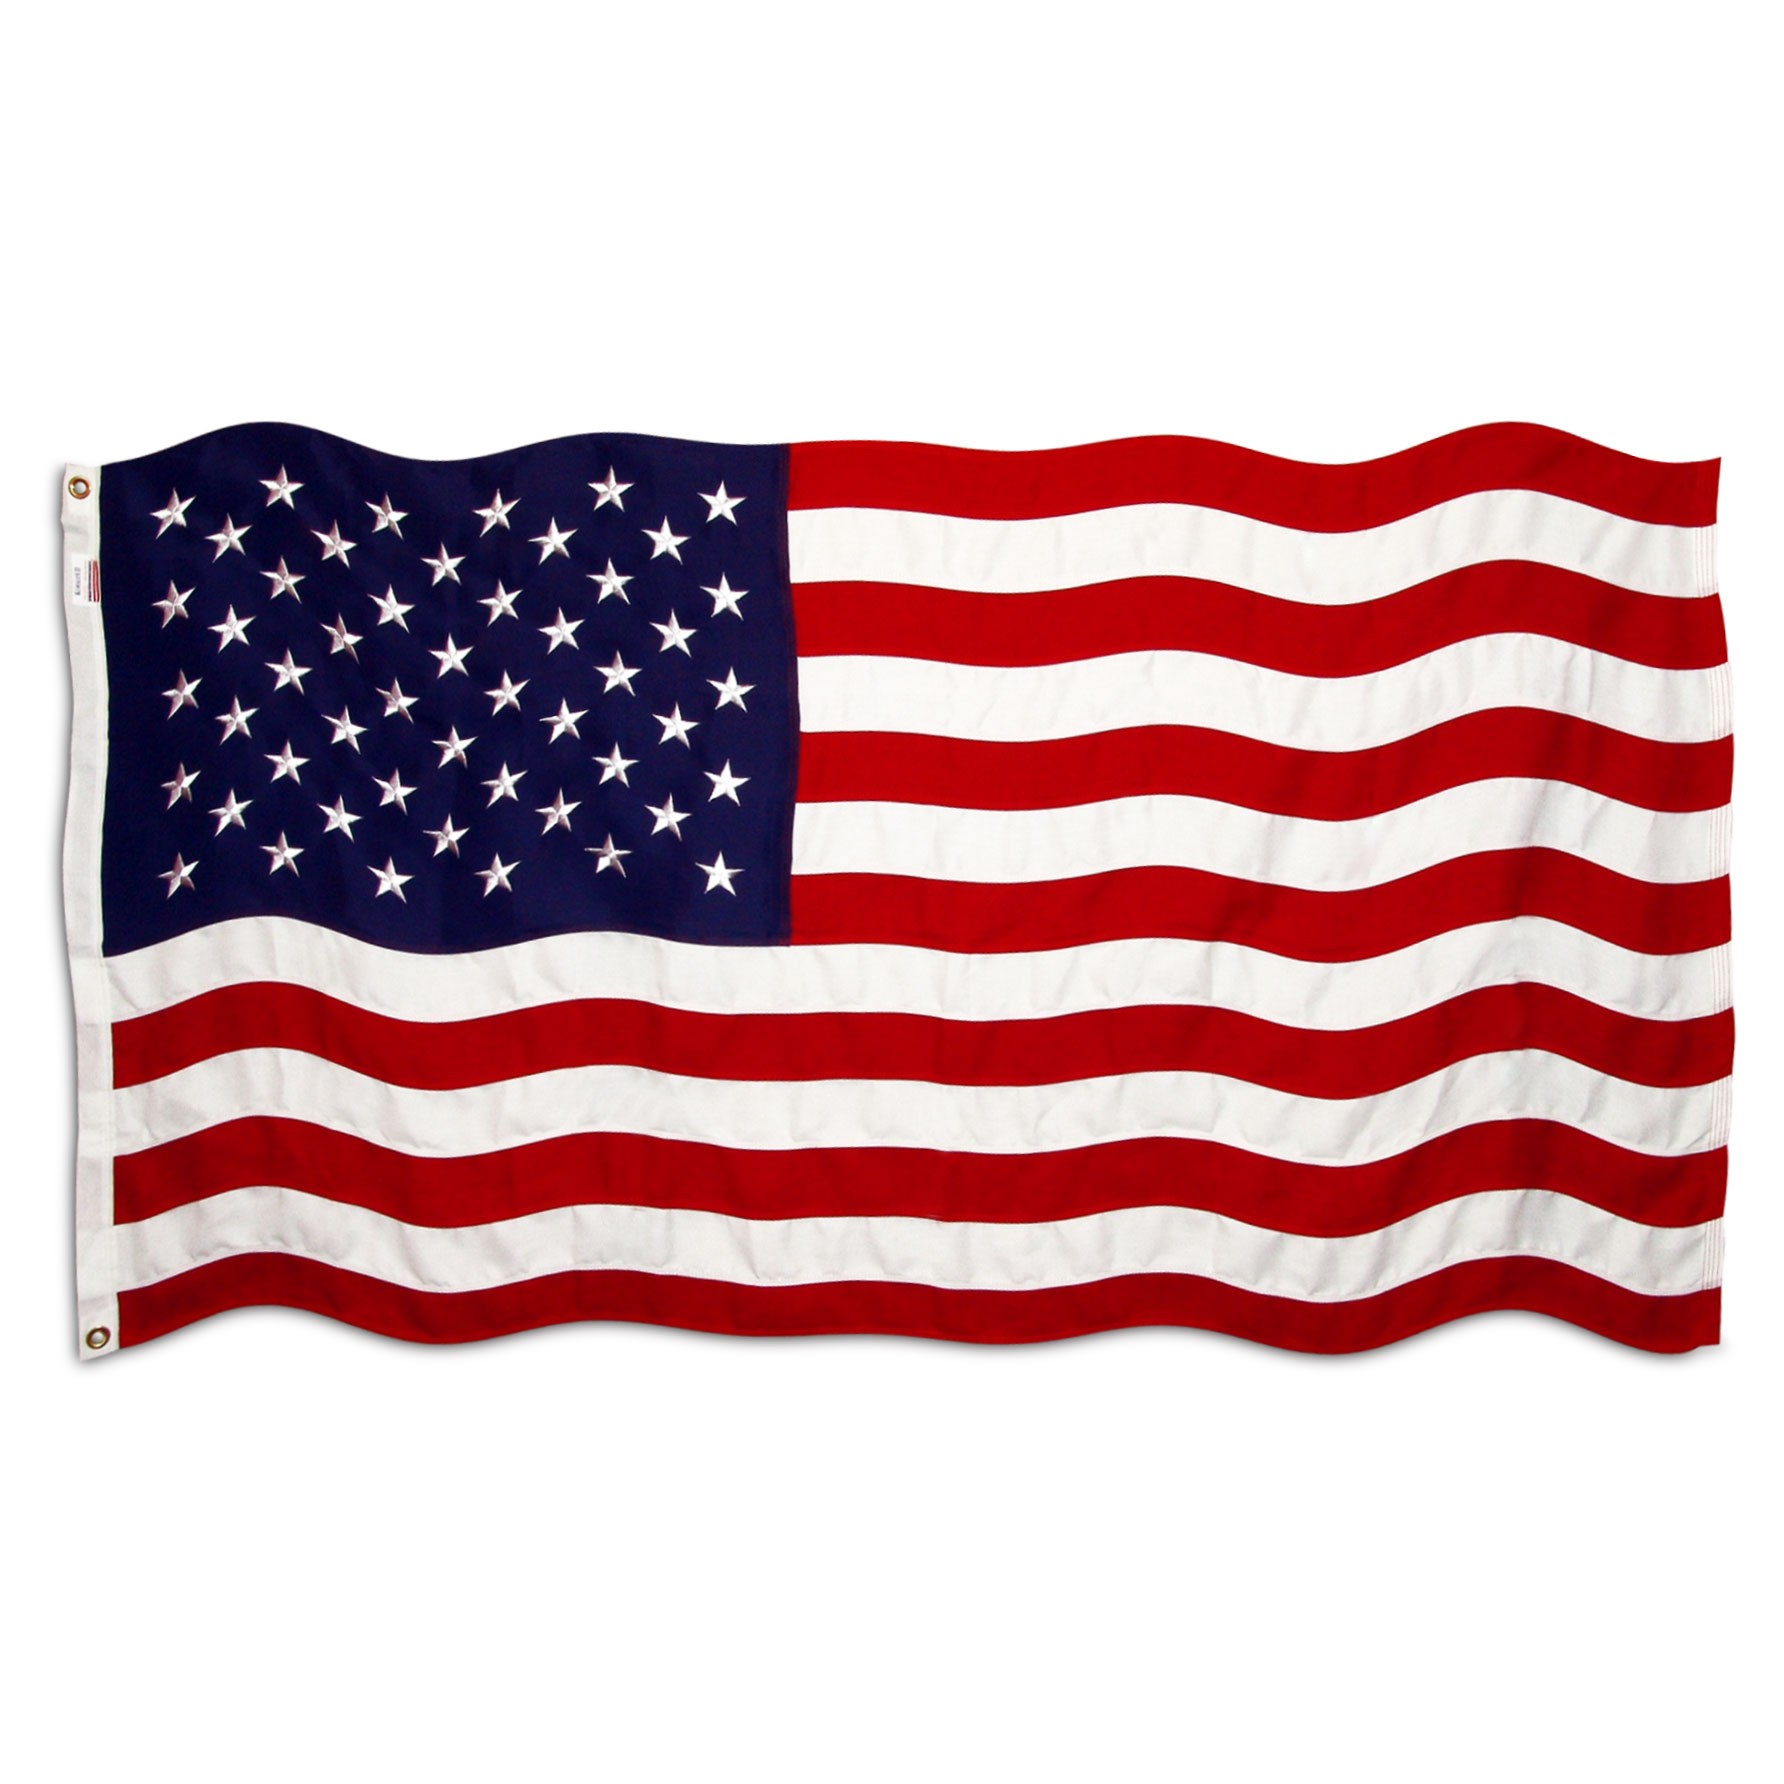 Clipart of us flag image free download American Flag Banner Clipart | Clipart Panda - Free Clipart Images image free download